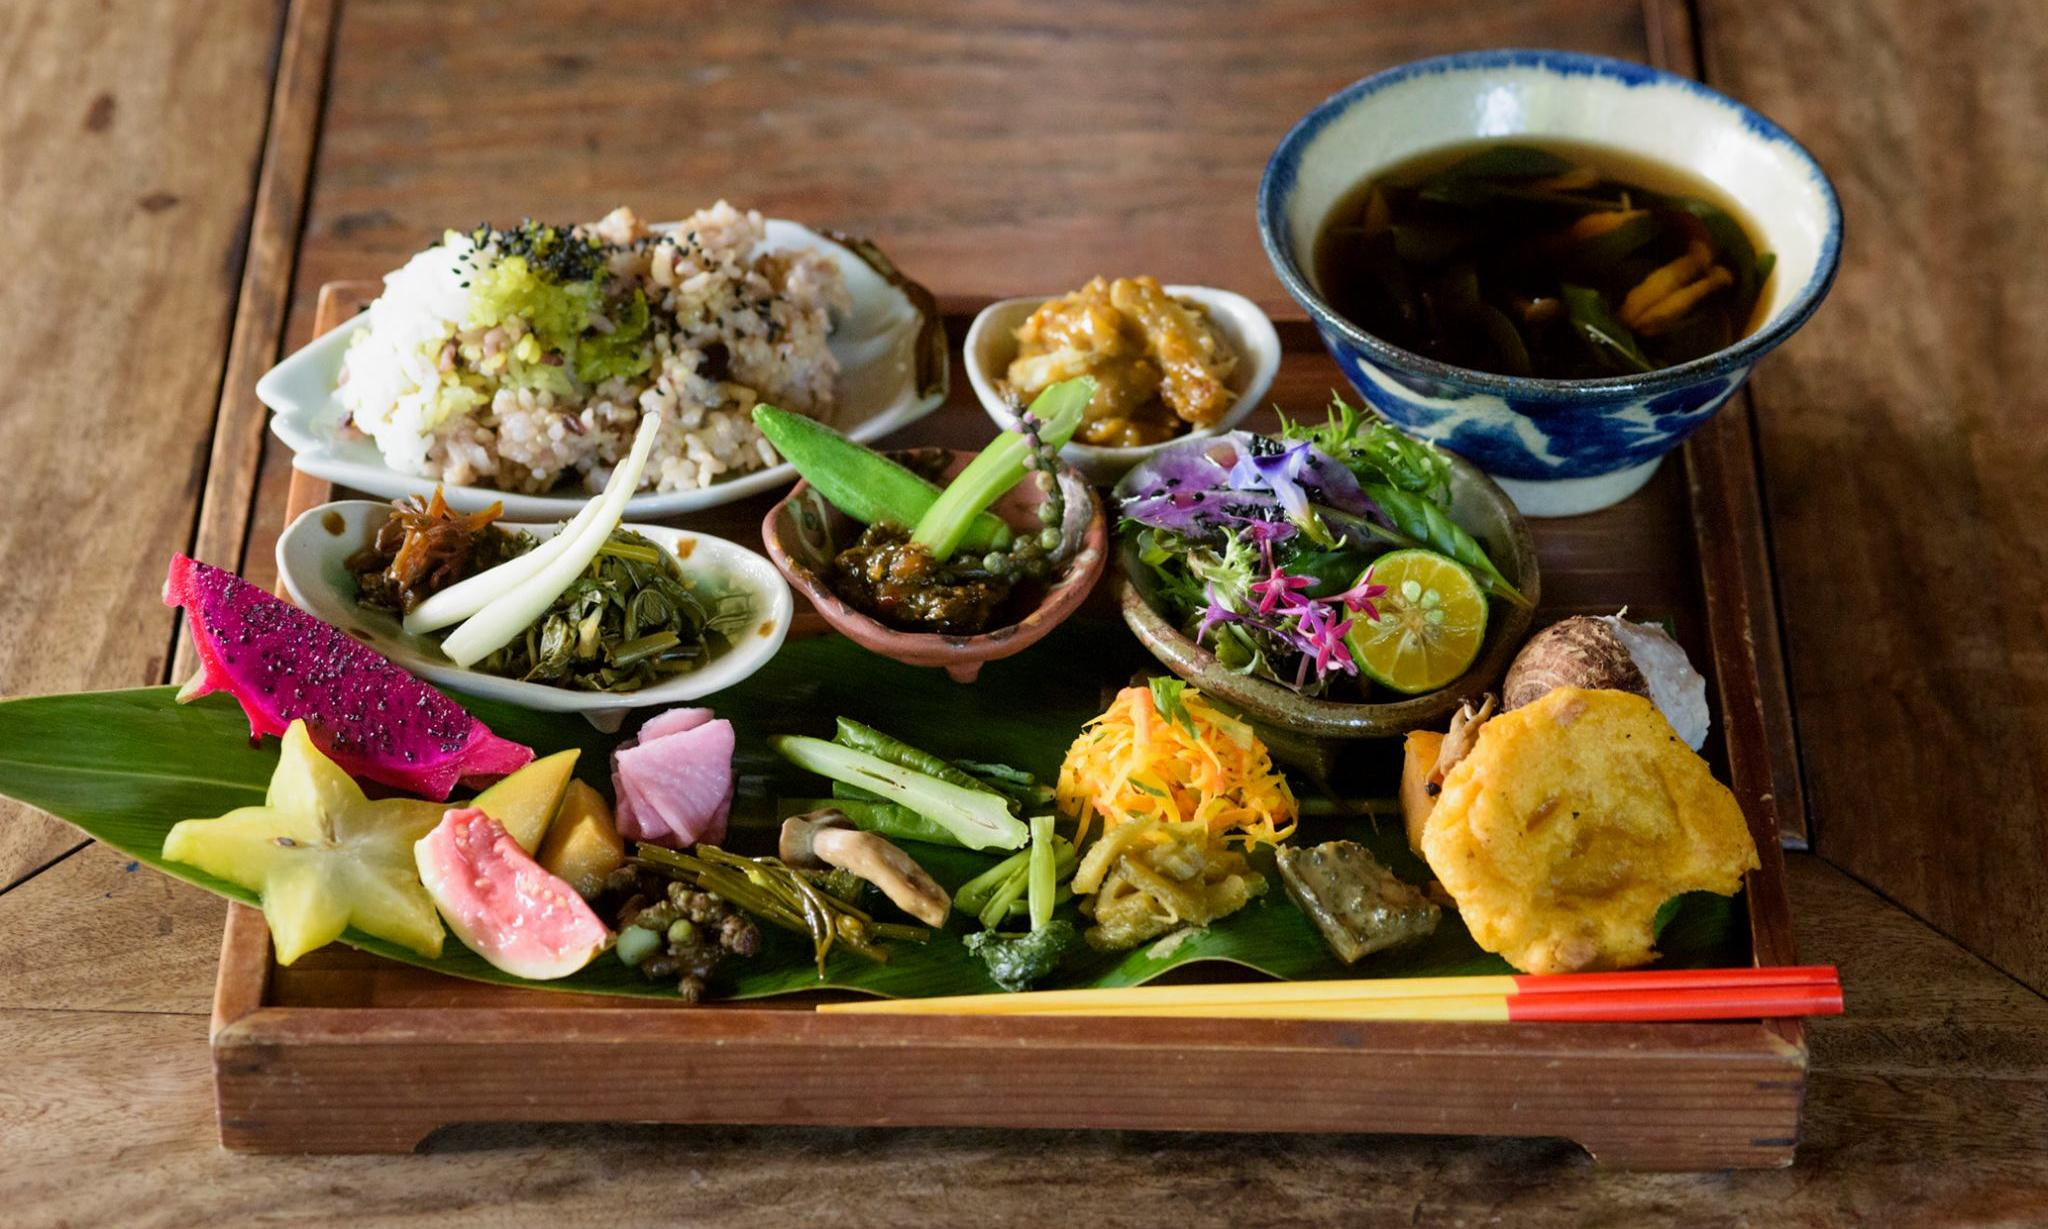 Vegging out: why eating Okinawa-style is the healthy option